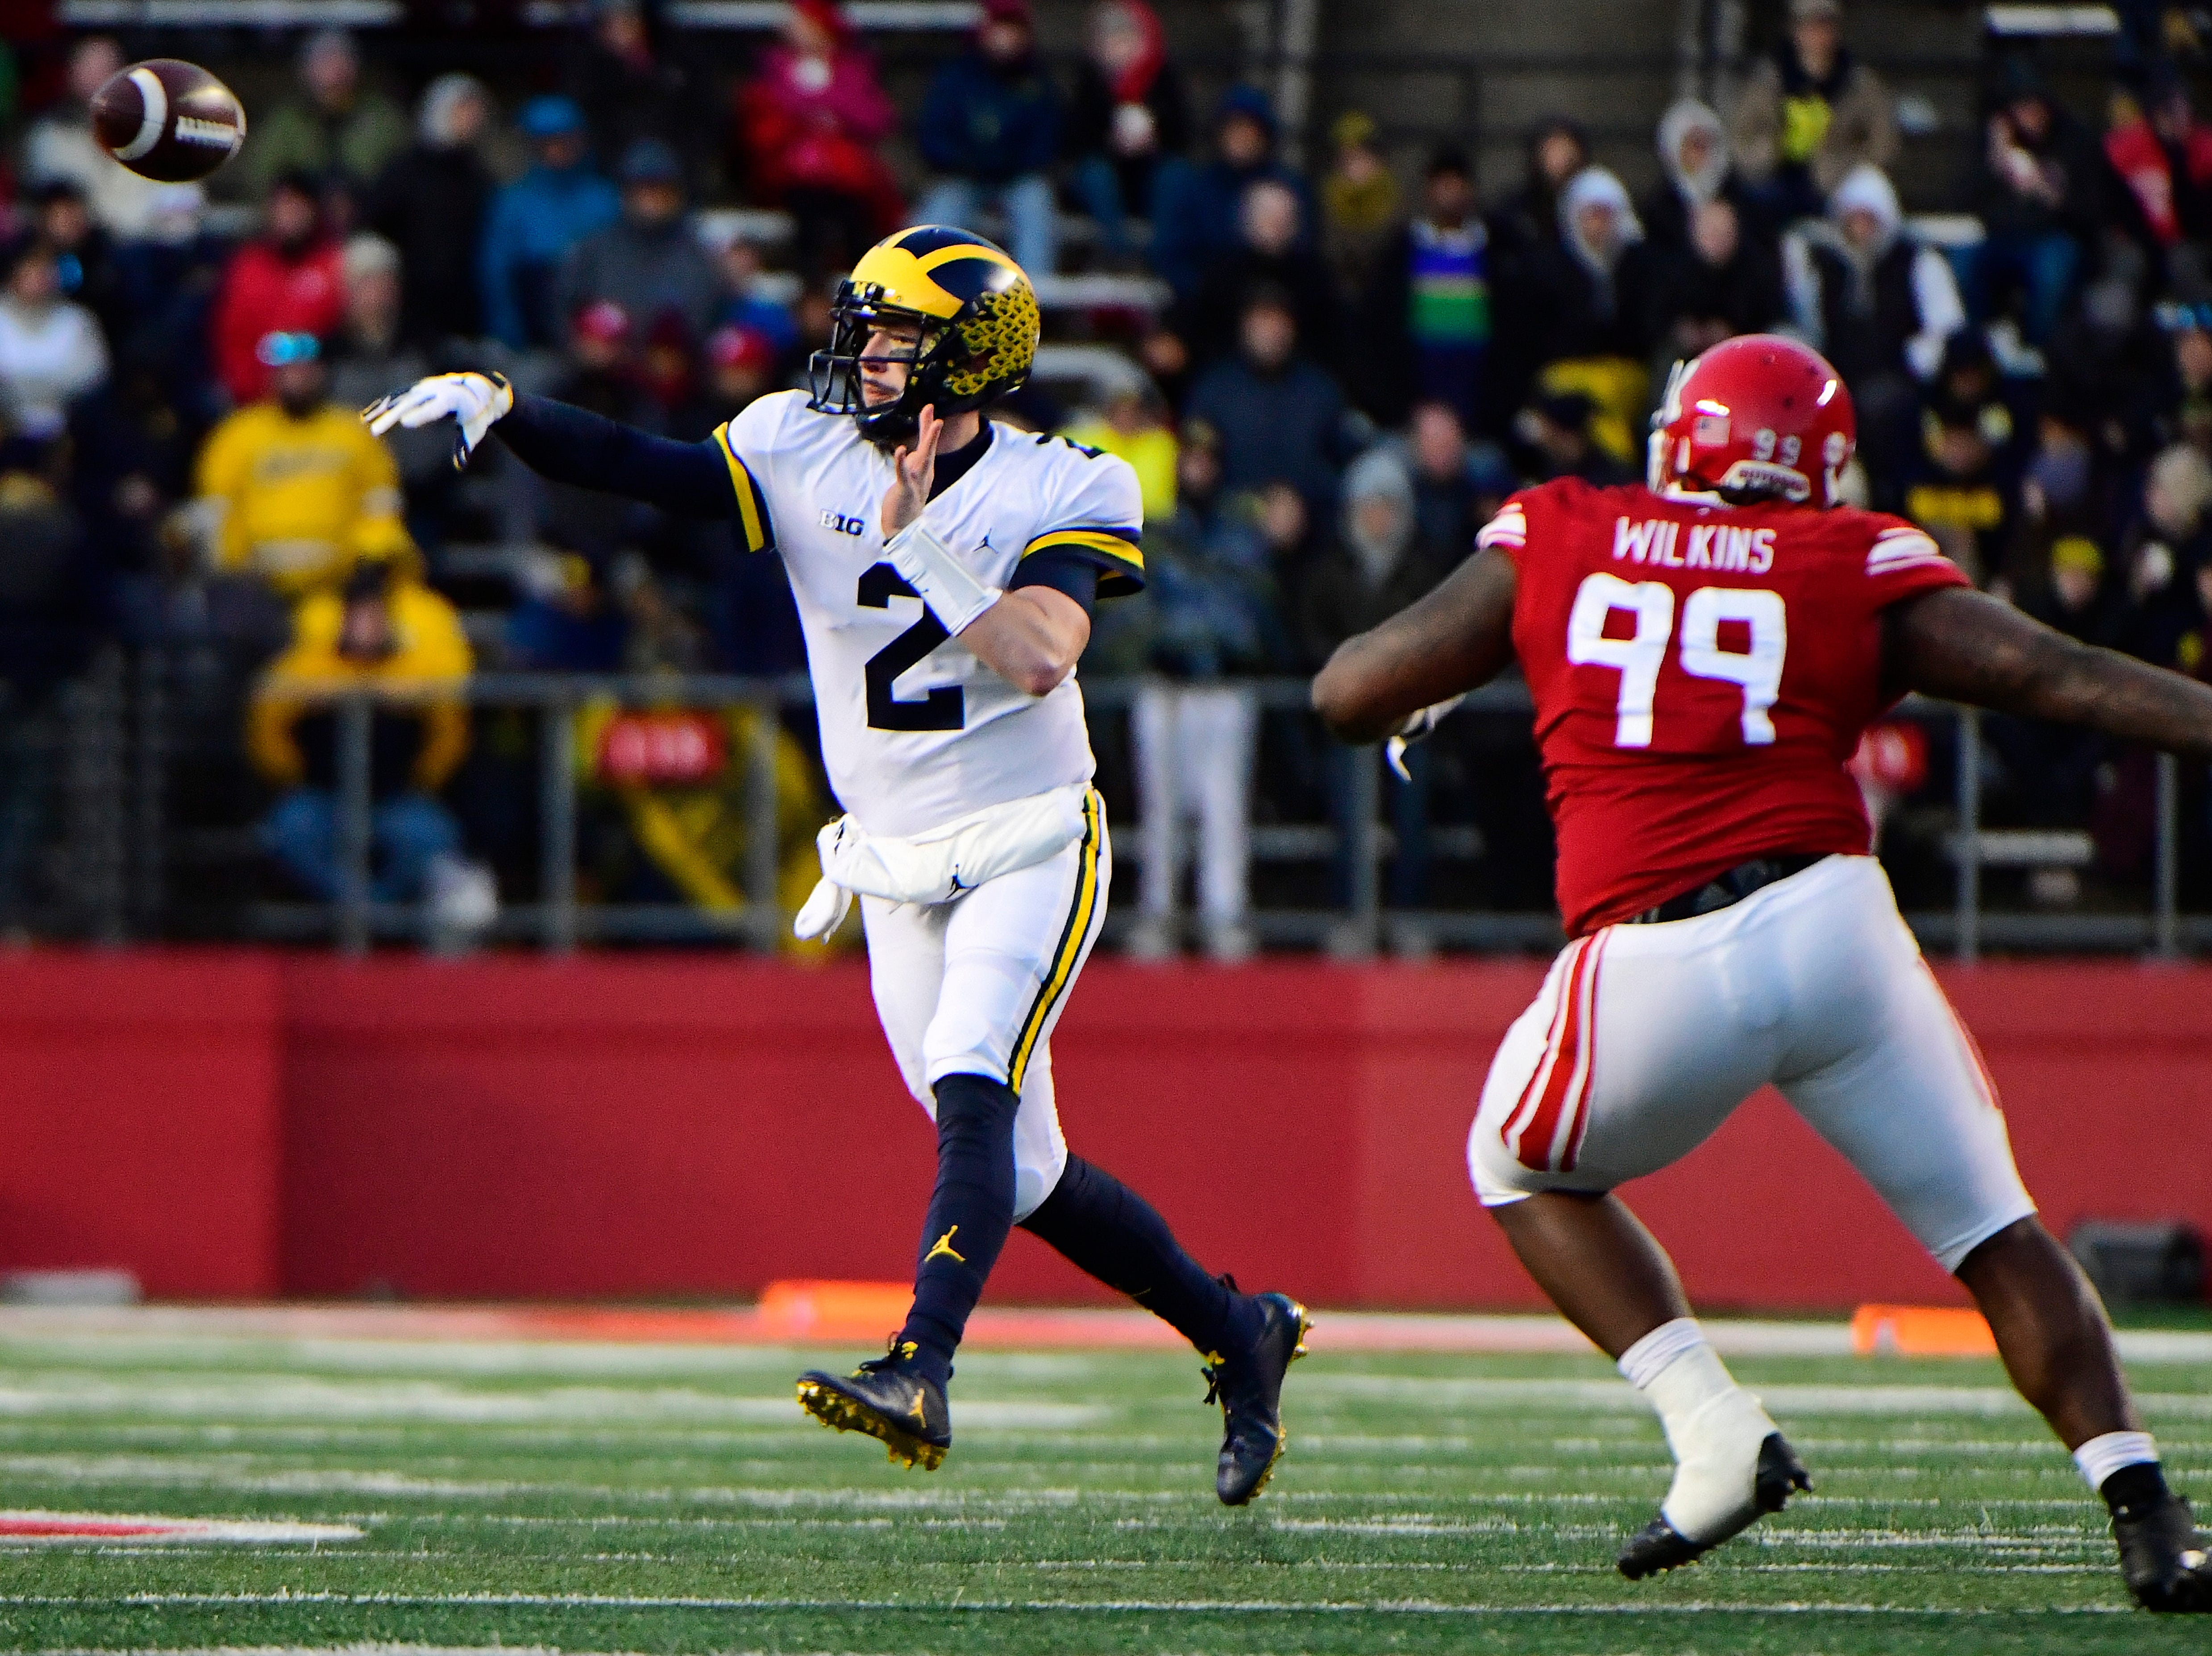 Shea Patterson of the Michigan Wolverines throws against Kevin Wilkins of the Rutgers Scarlet Knights.